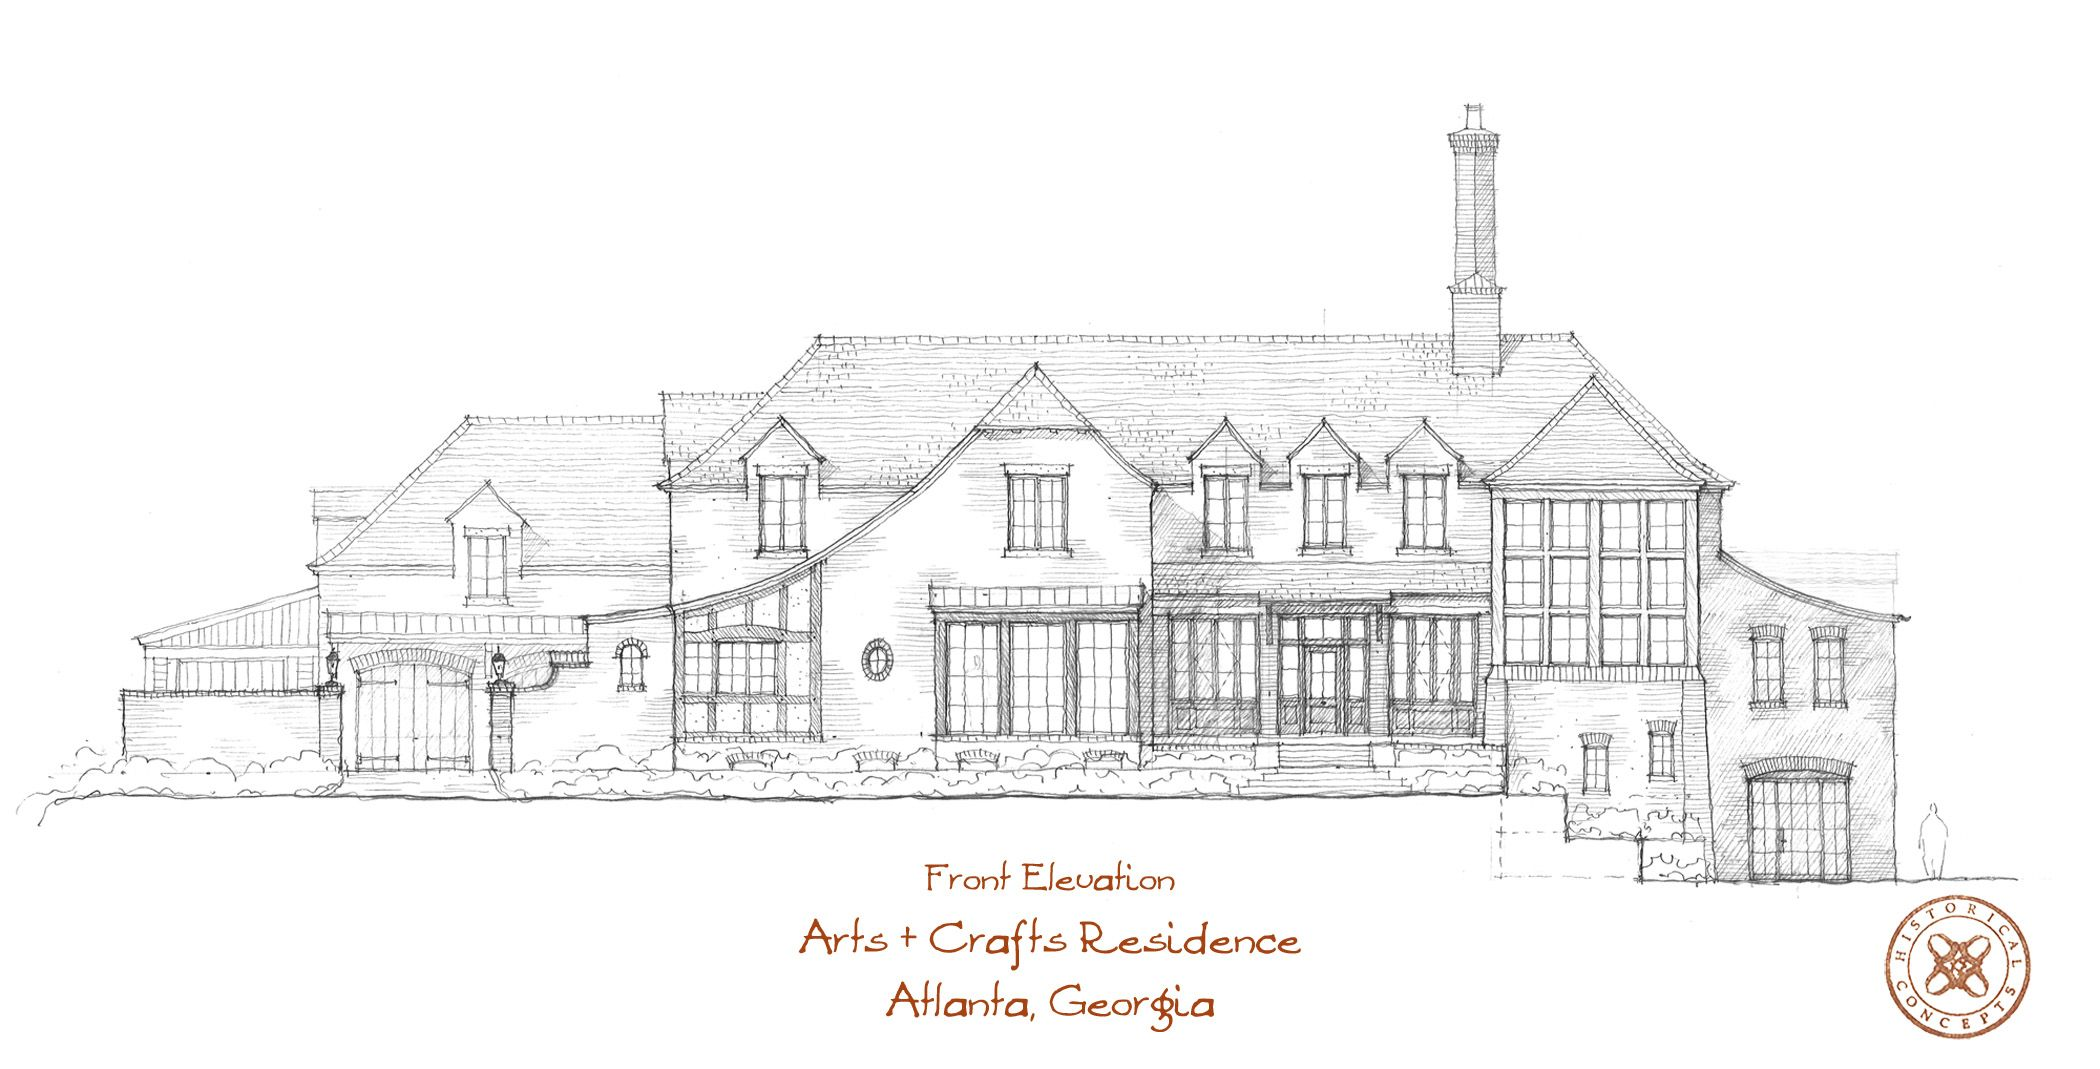 A Hand Sketch Of The Front Elevation Of An Arts & Crafts